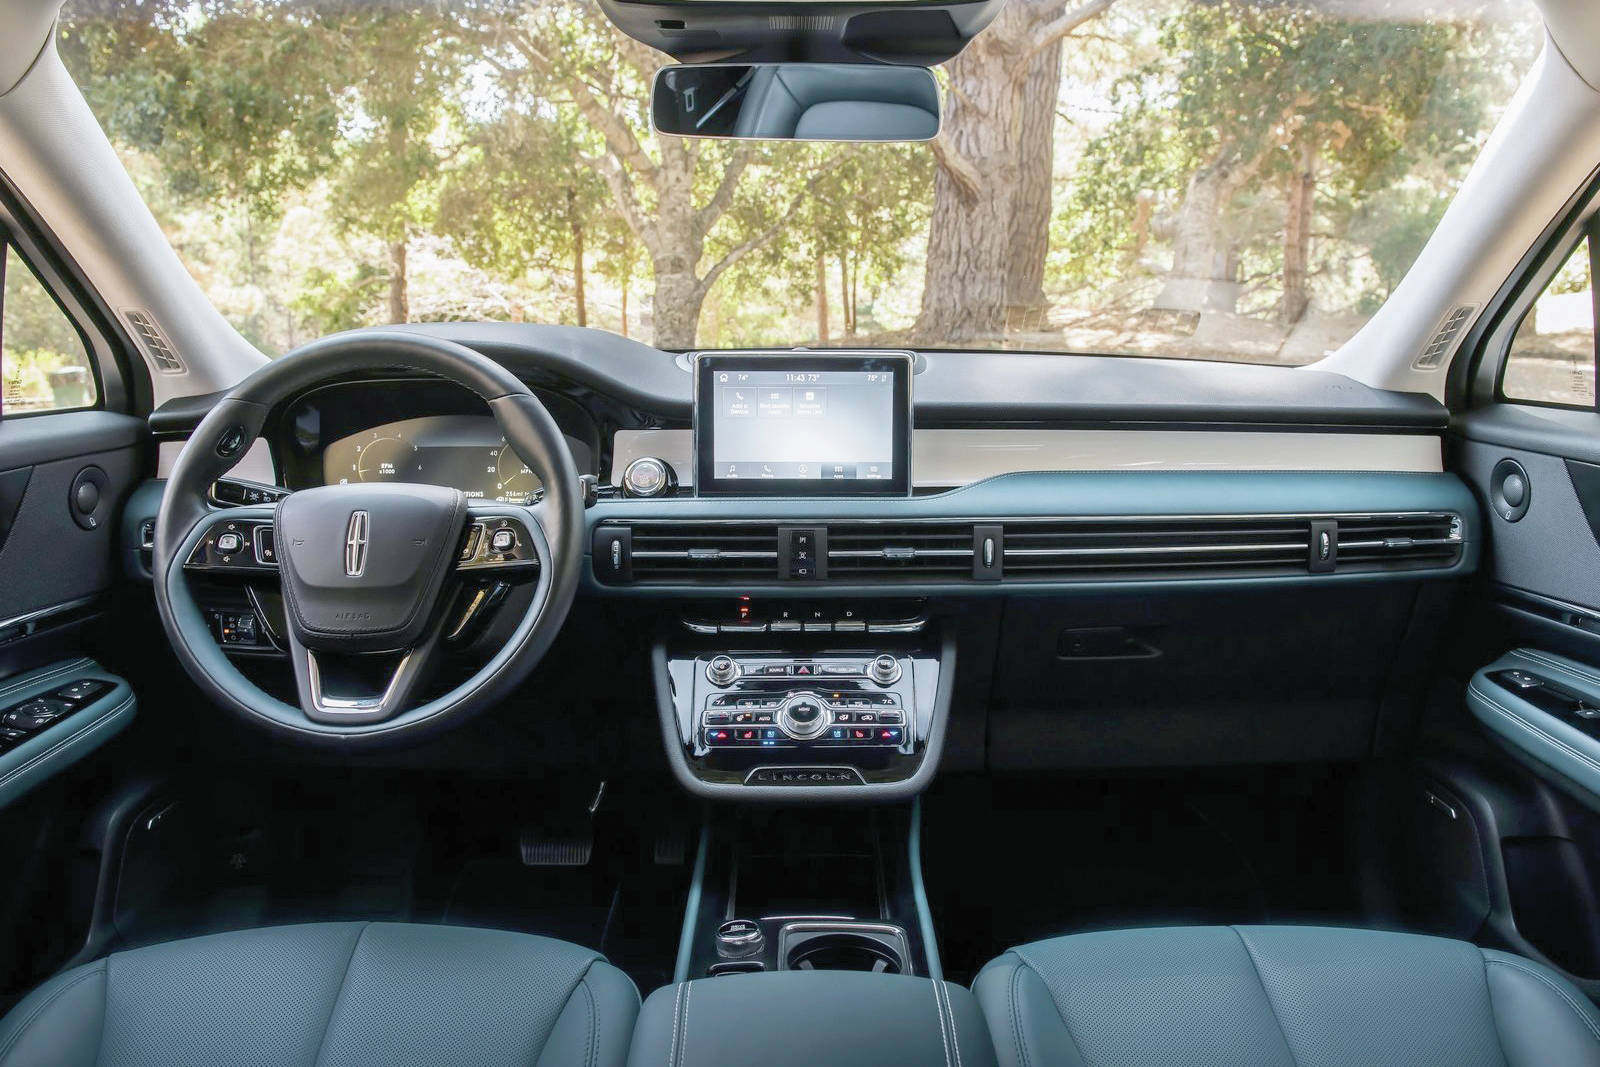 Compared with the MKC, the Corsair's dashboard is less cluttered and there's more shoulder room because of a more than 7.5-centimetre increase in width.